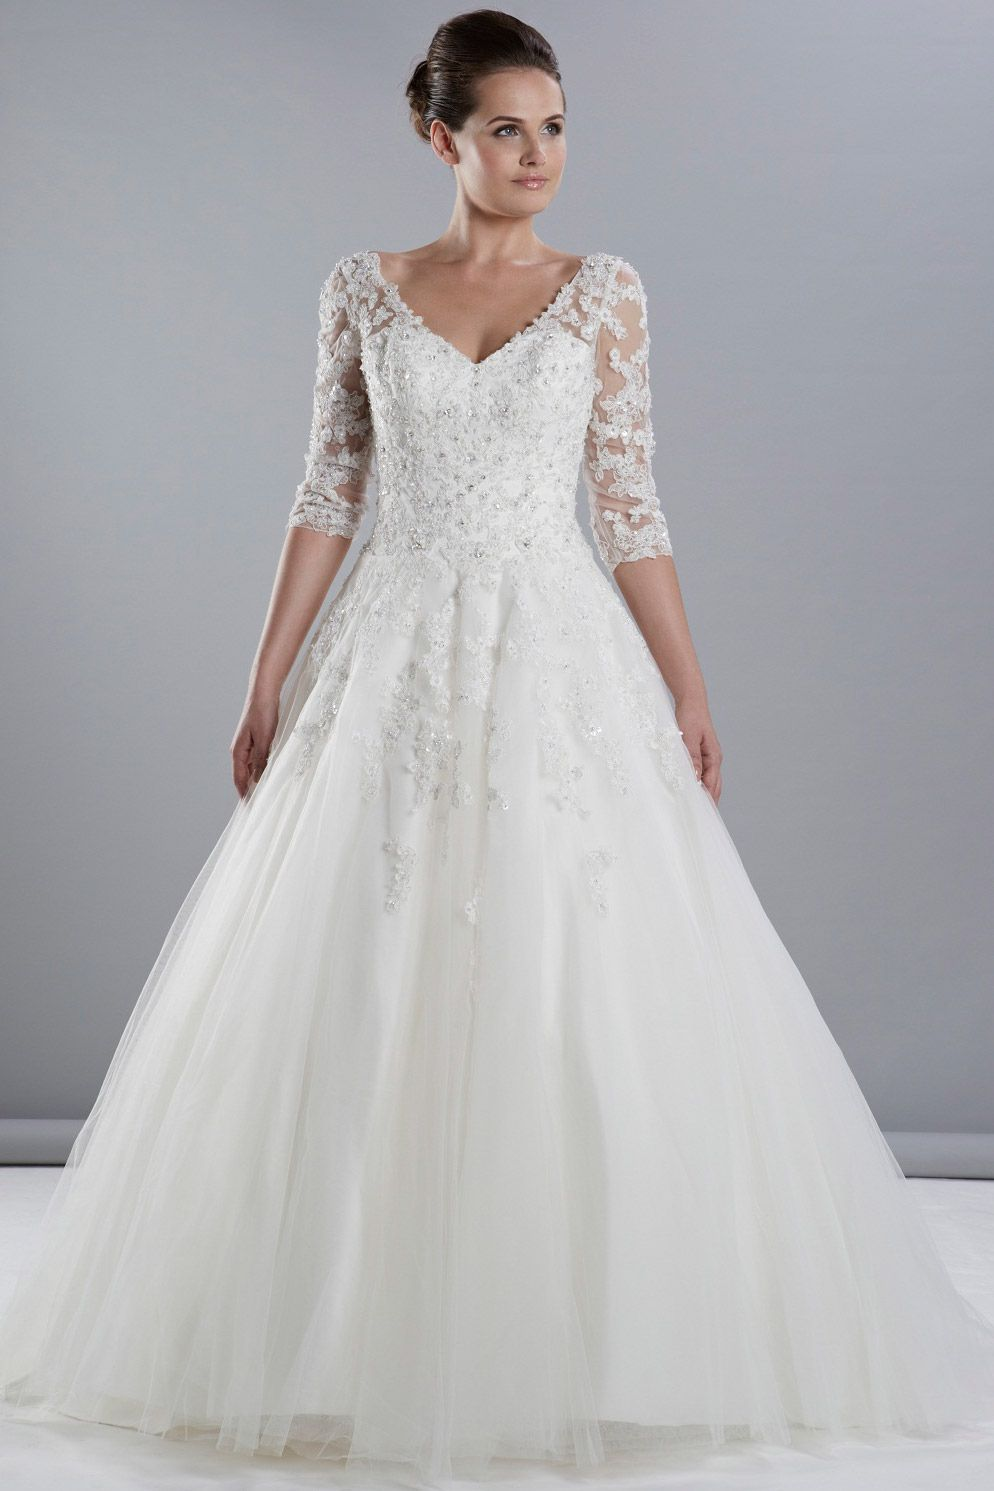 Plus Size Wedding Dresses Az - Cold Shoulder Dresses for Wedding ...